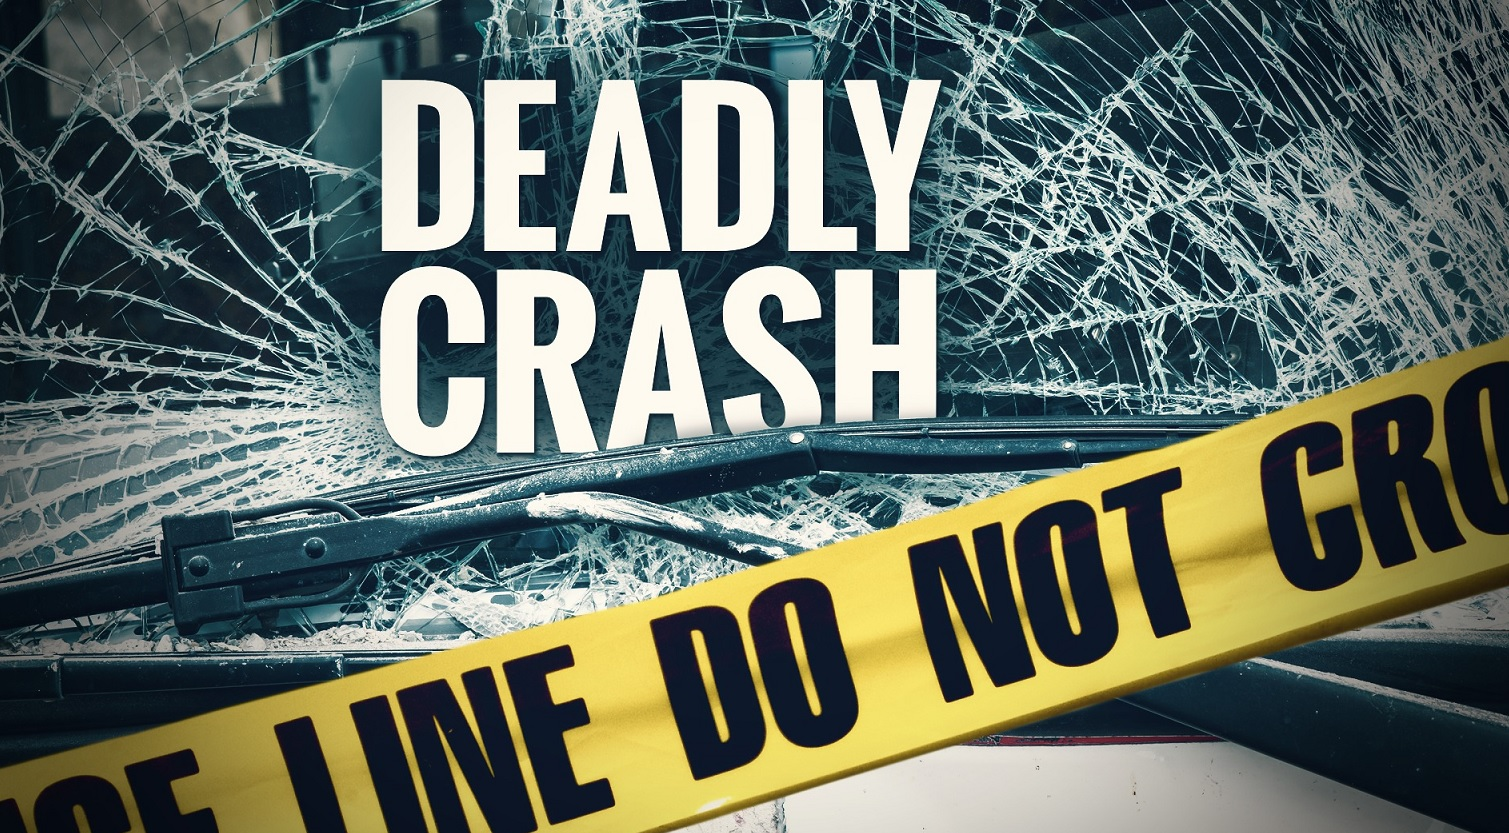 TRAFFIC ALERT: Motorcyclist Dies in Crash on I-10 in MS